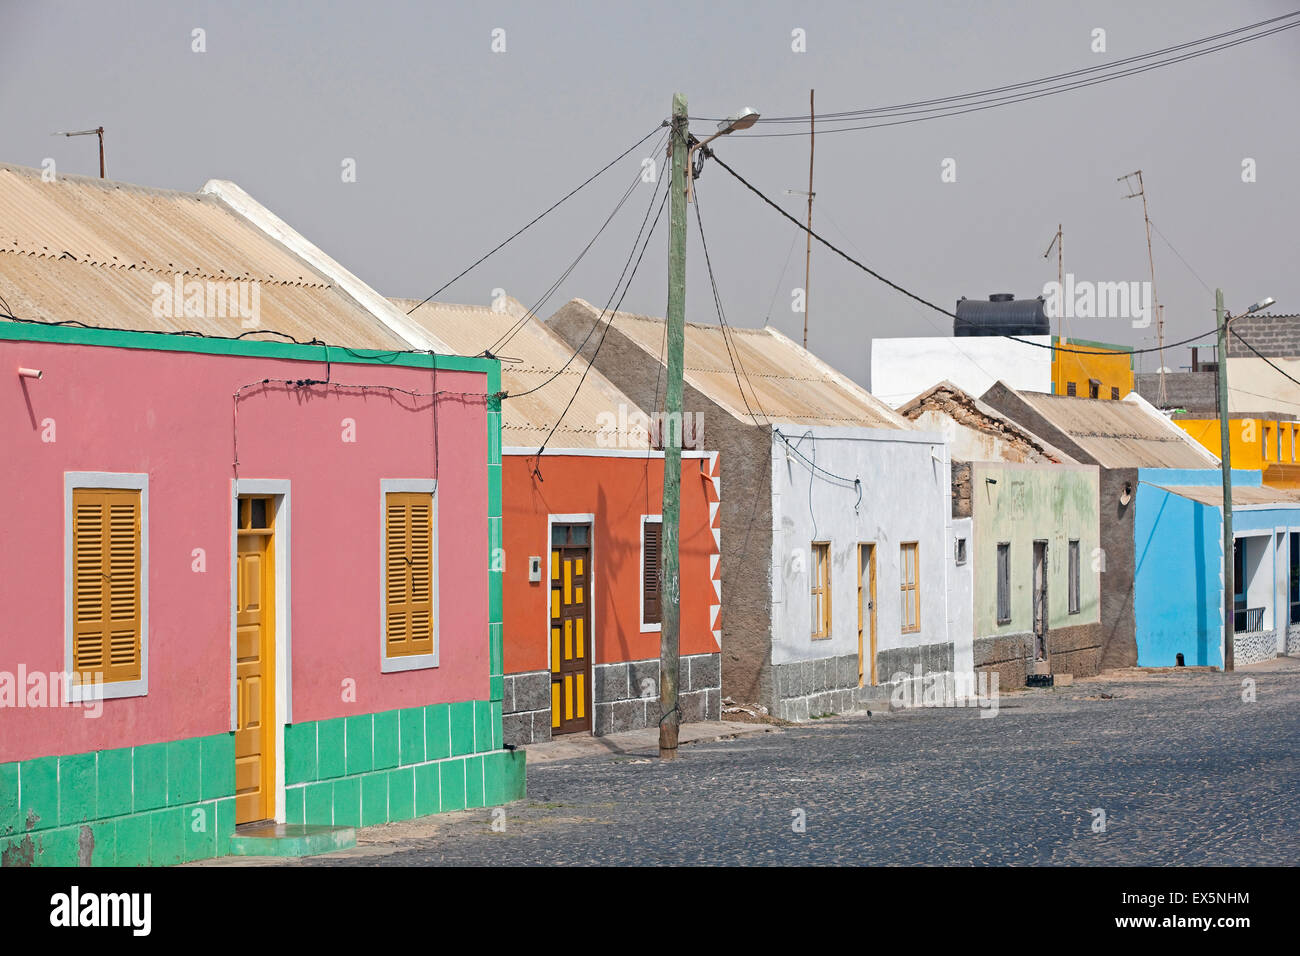 Street with colourful houses in the village Rabil on the island Boa Vista, Cape Verde / Cabo Verde, Western Africa Stock Photo